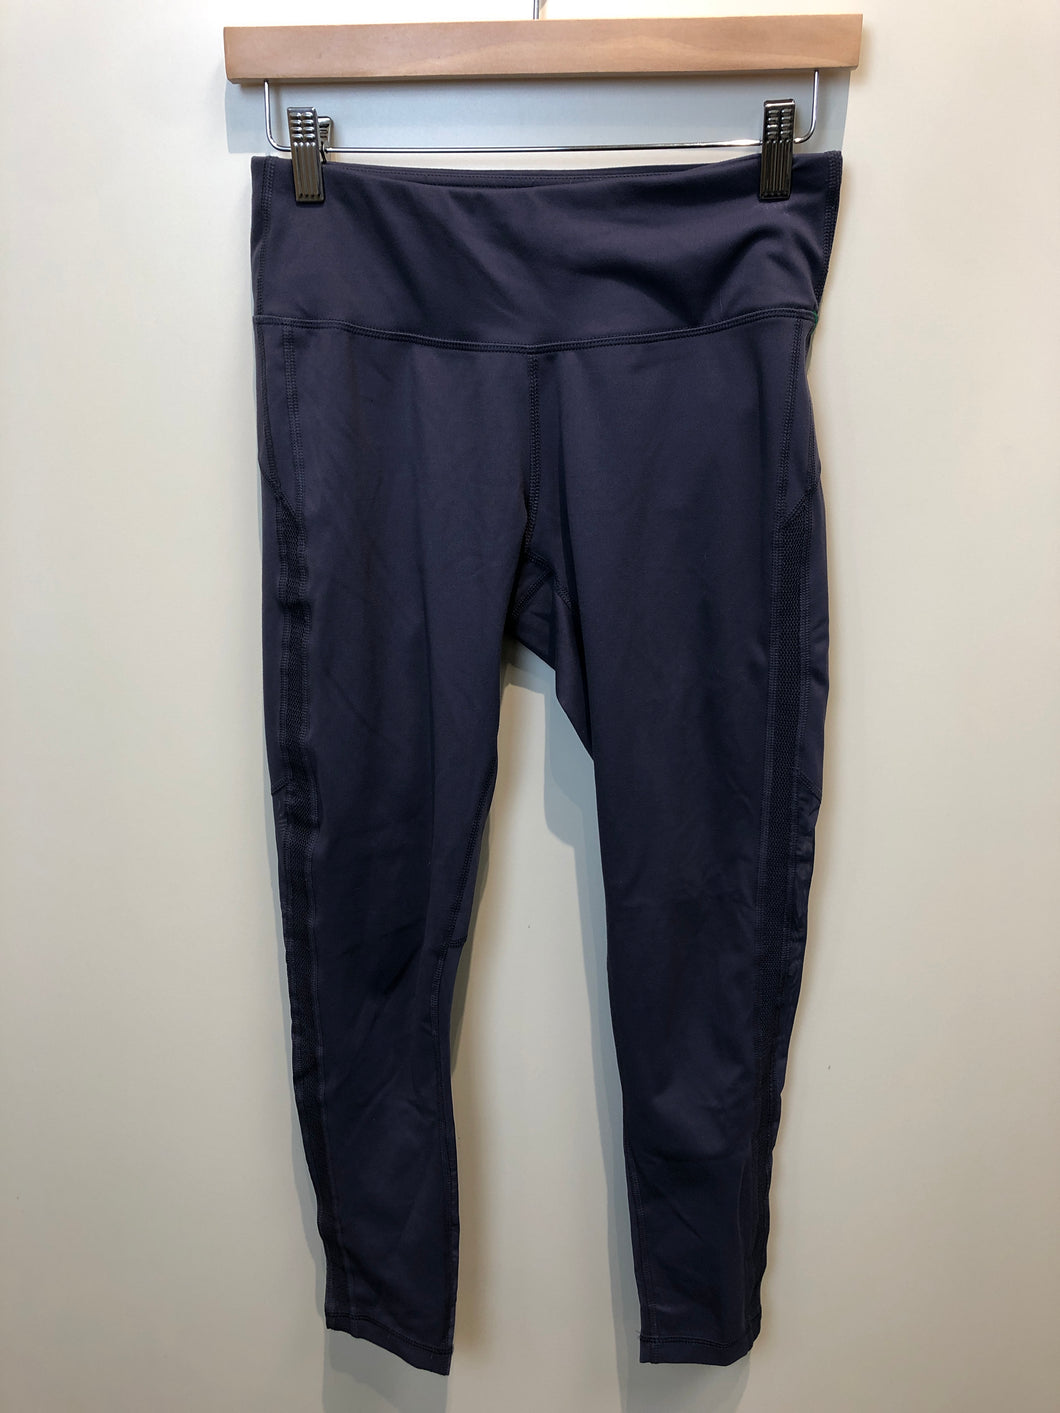 Yogalicious Womens Athletic Pants Size Small